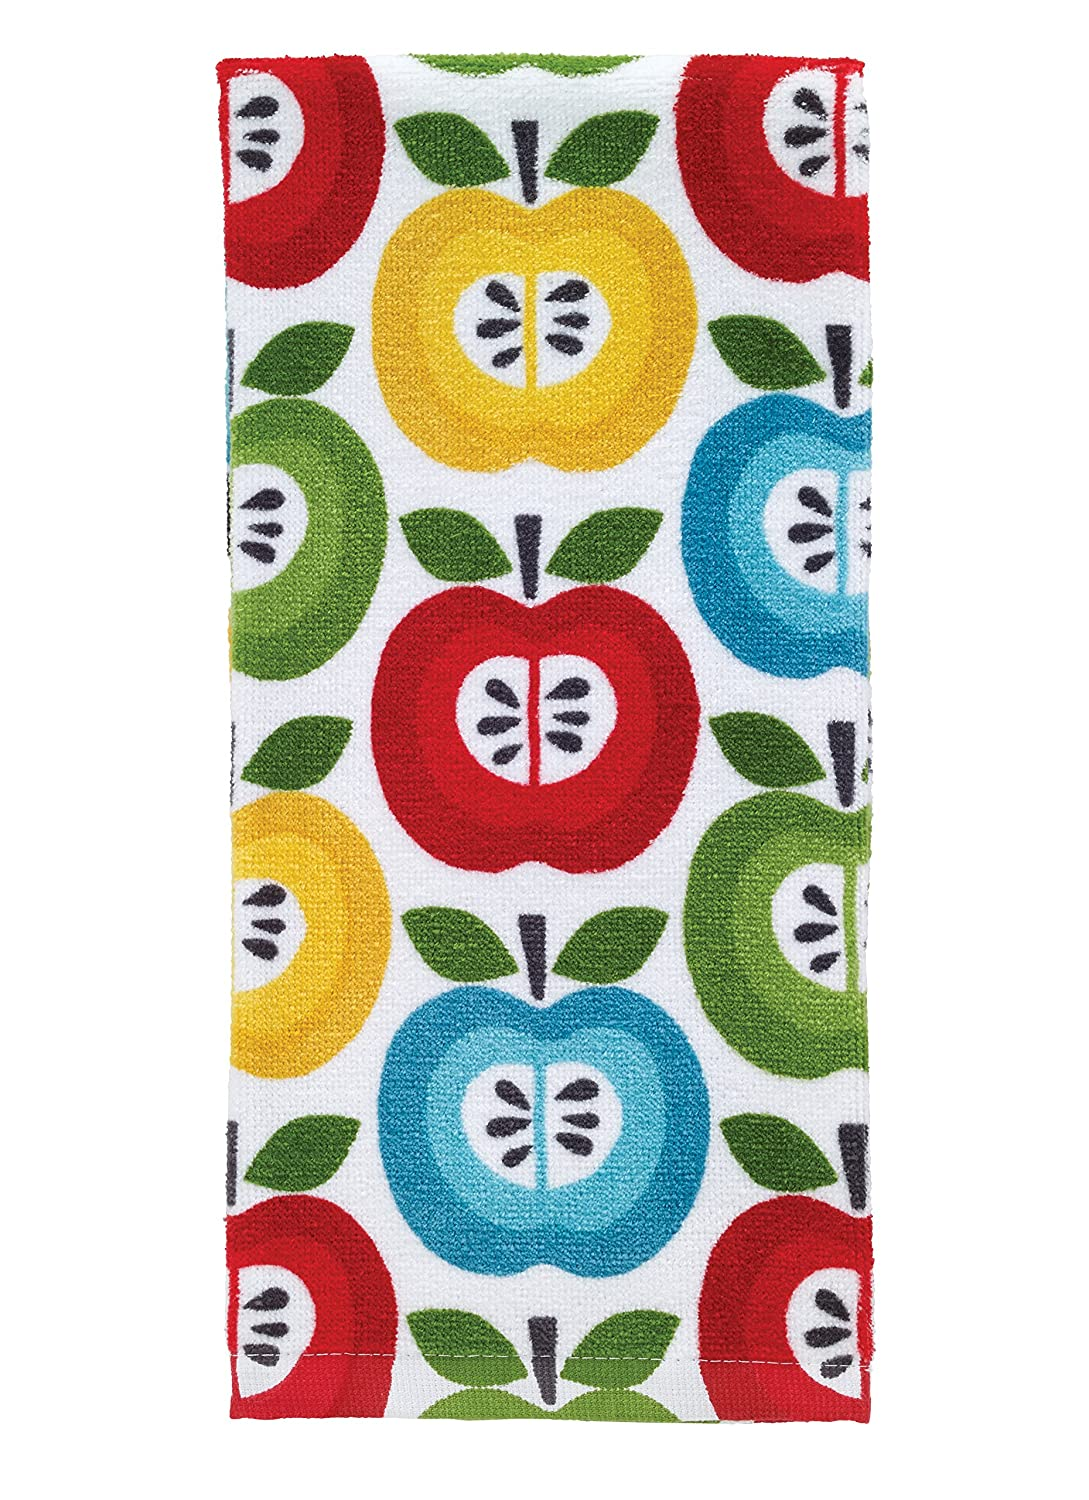 "T-Fal Textiles 100% Cotton Fiber Reactive Printed Kitchen Dish Towel, 19"" x 28"", Apples Print"